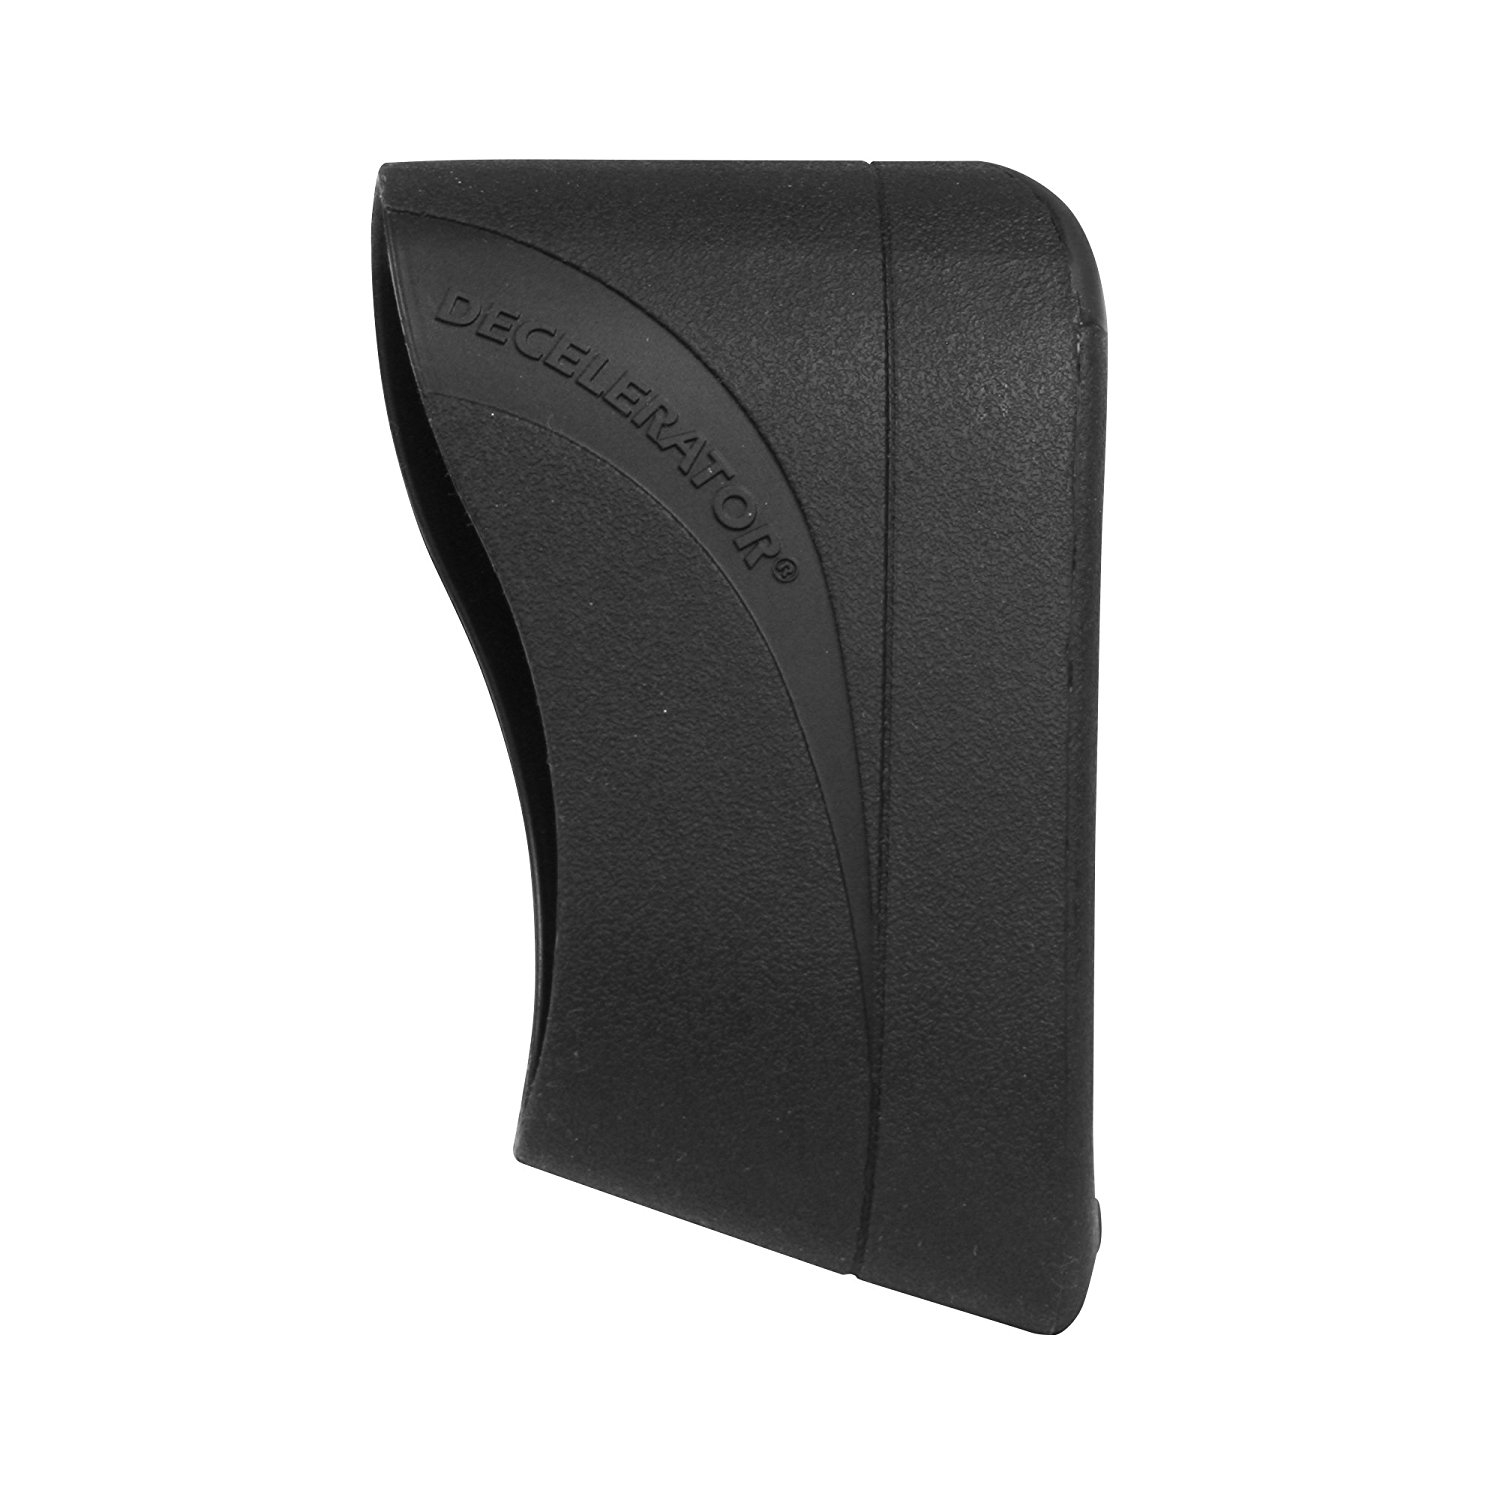 Pachmayr Decelerator Slip On Recoil Pad